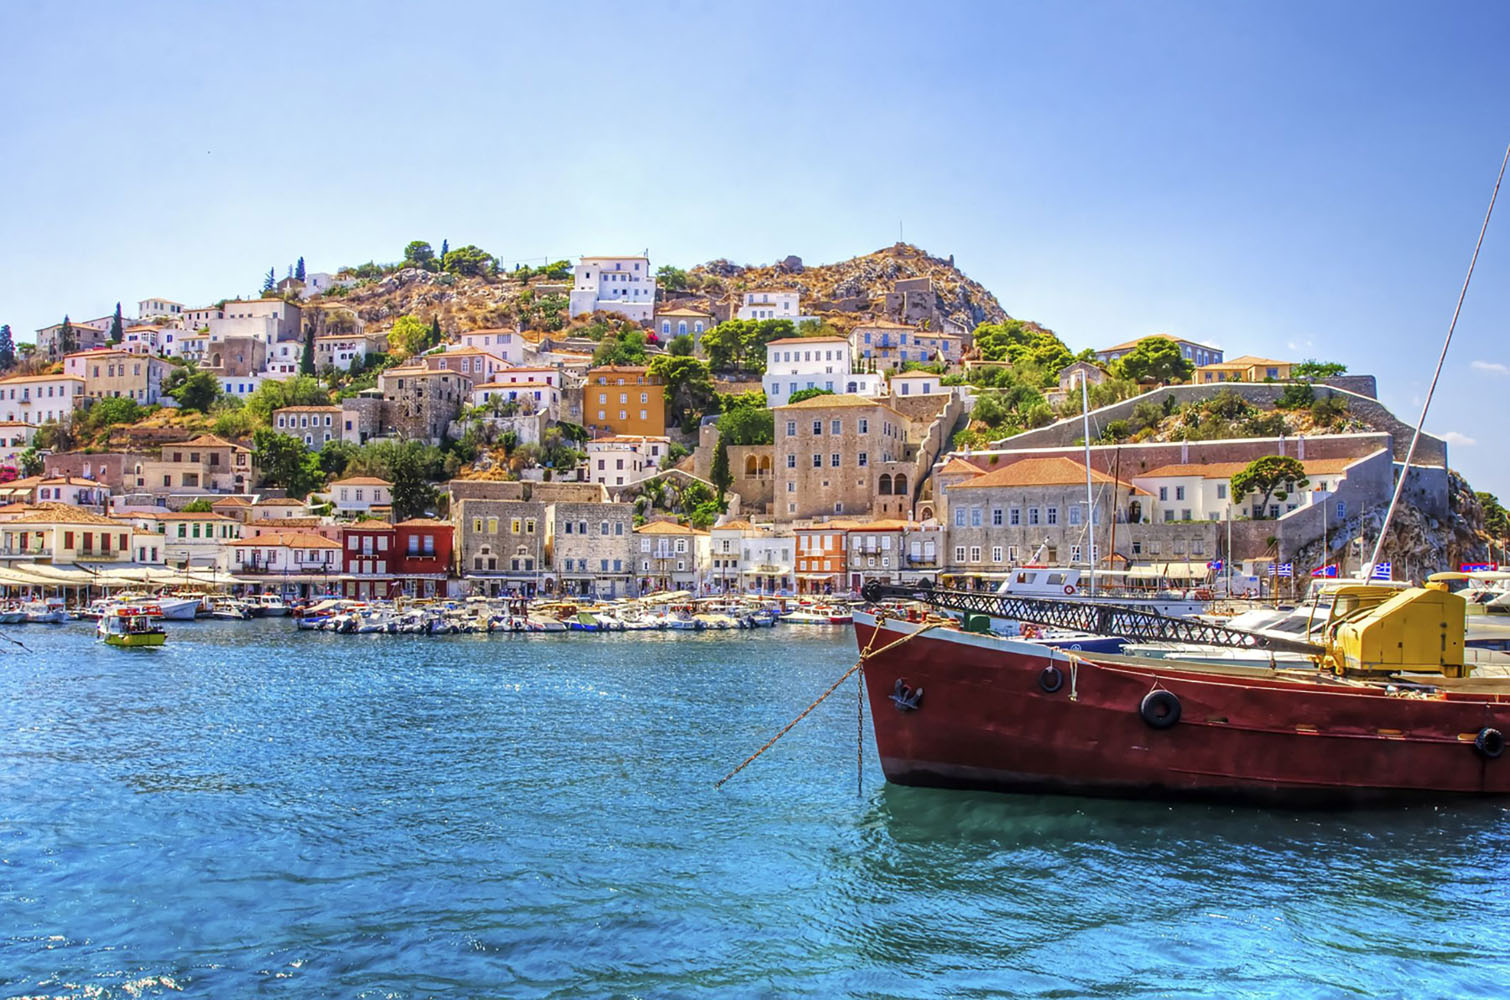 The Greek island of Hydra with a fishing boat in the water